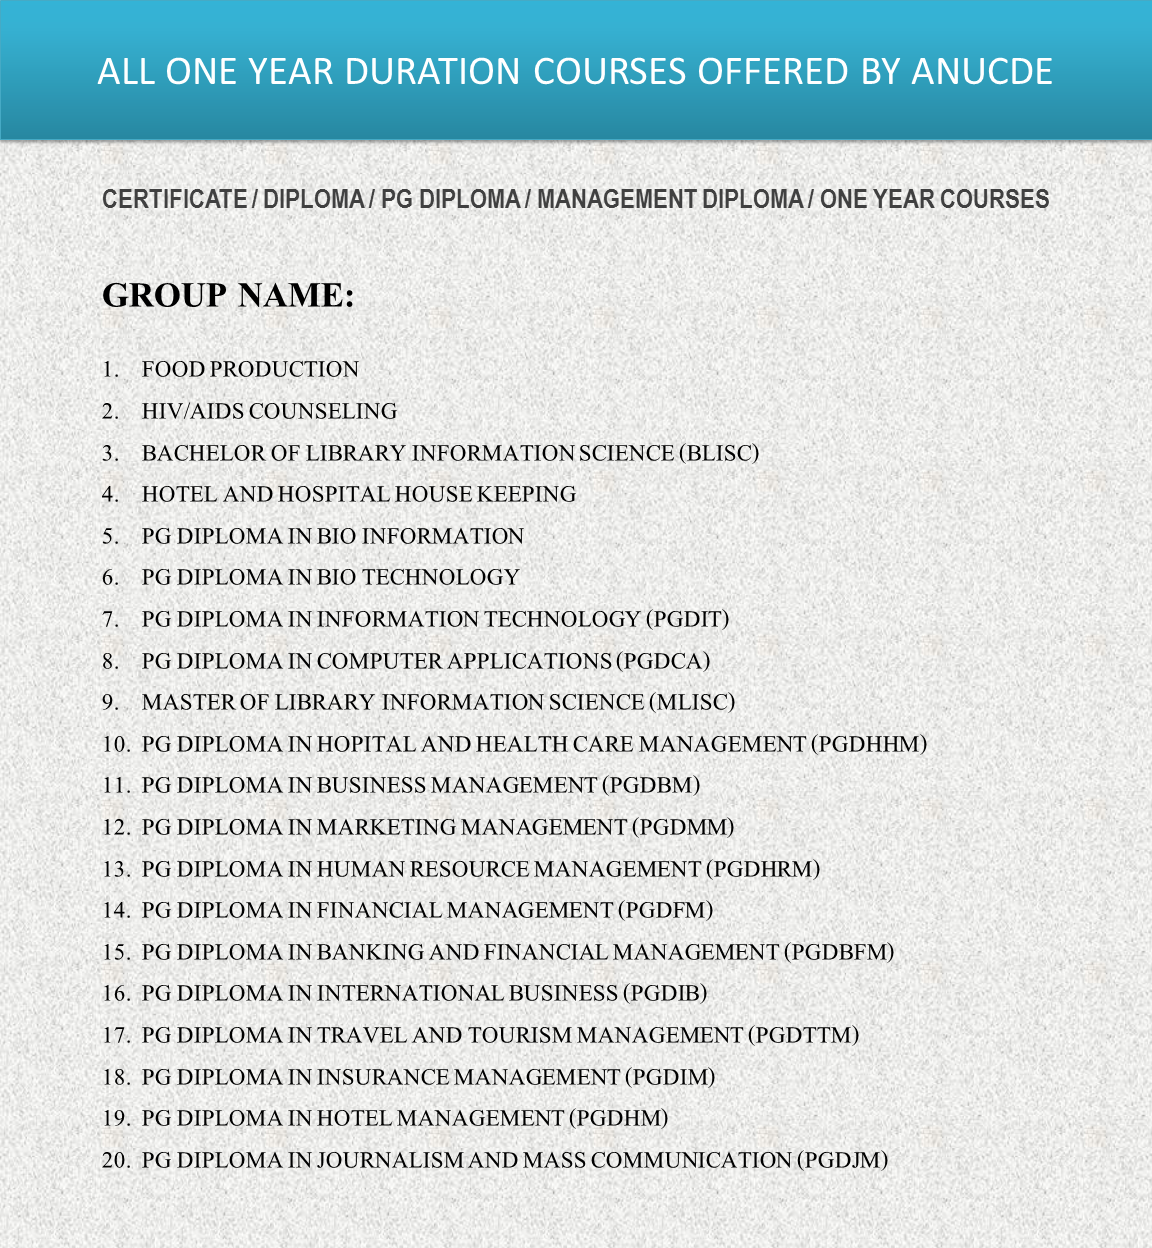 ALL ONE YEAR DURATION COURSES OFFERED BY ANUCDE